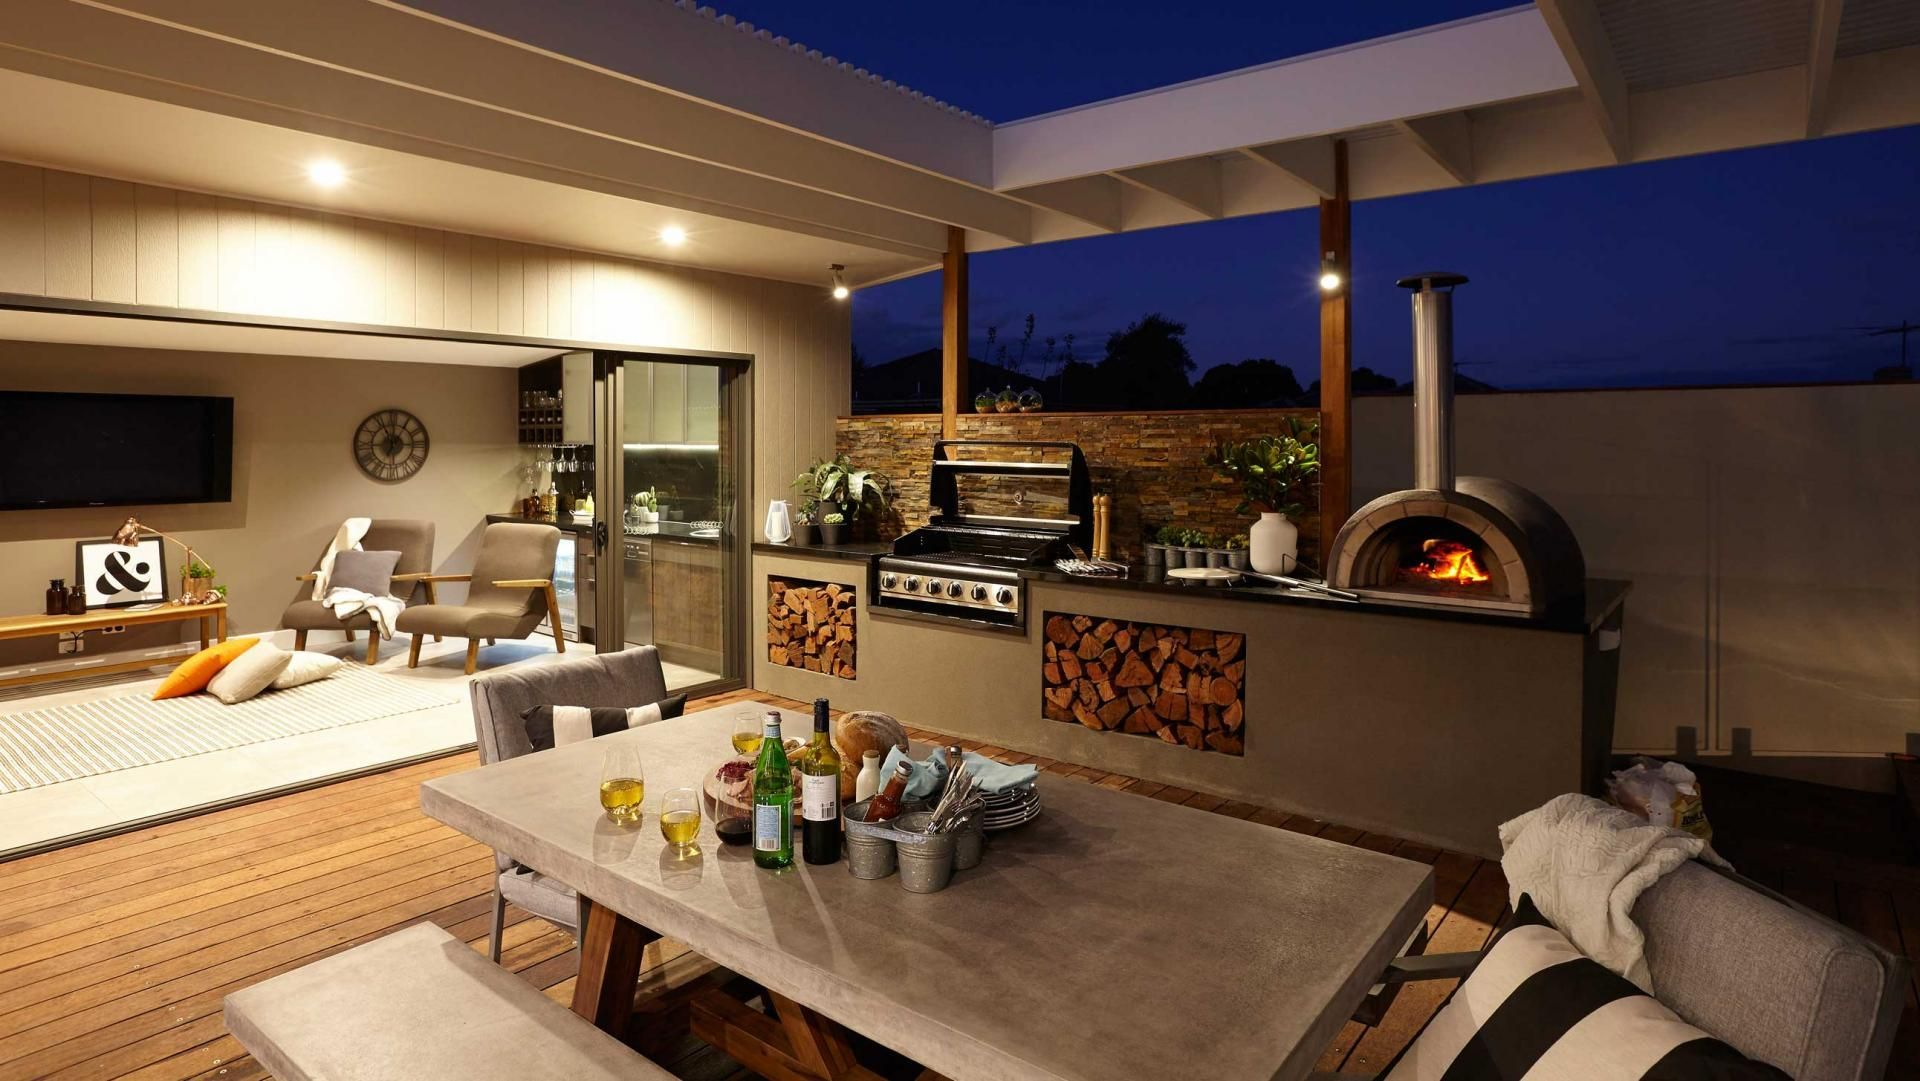 Image result for outdoor entertainment area ideas for ... on Small Backyard Entertainment Area Ideas id=49940